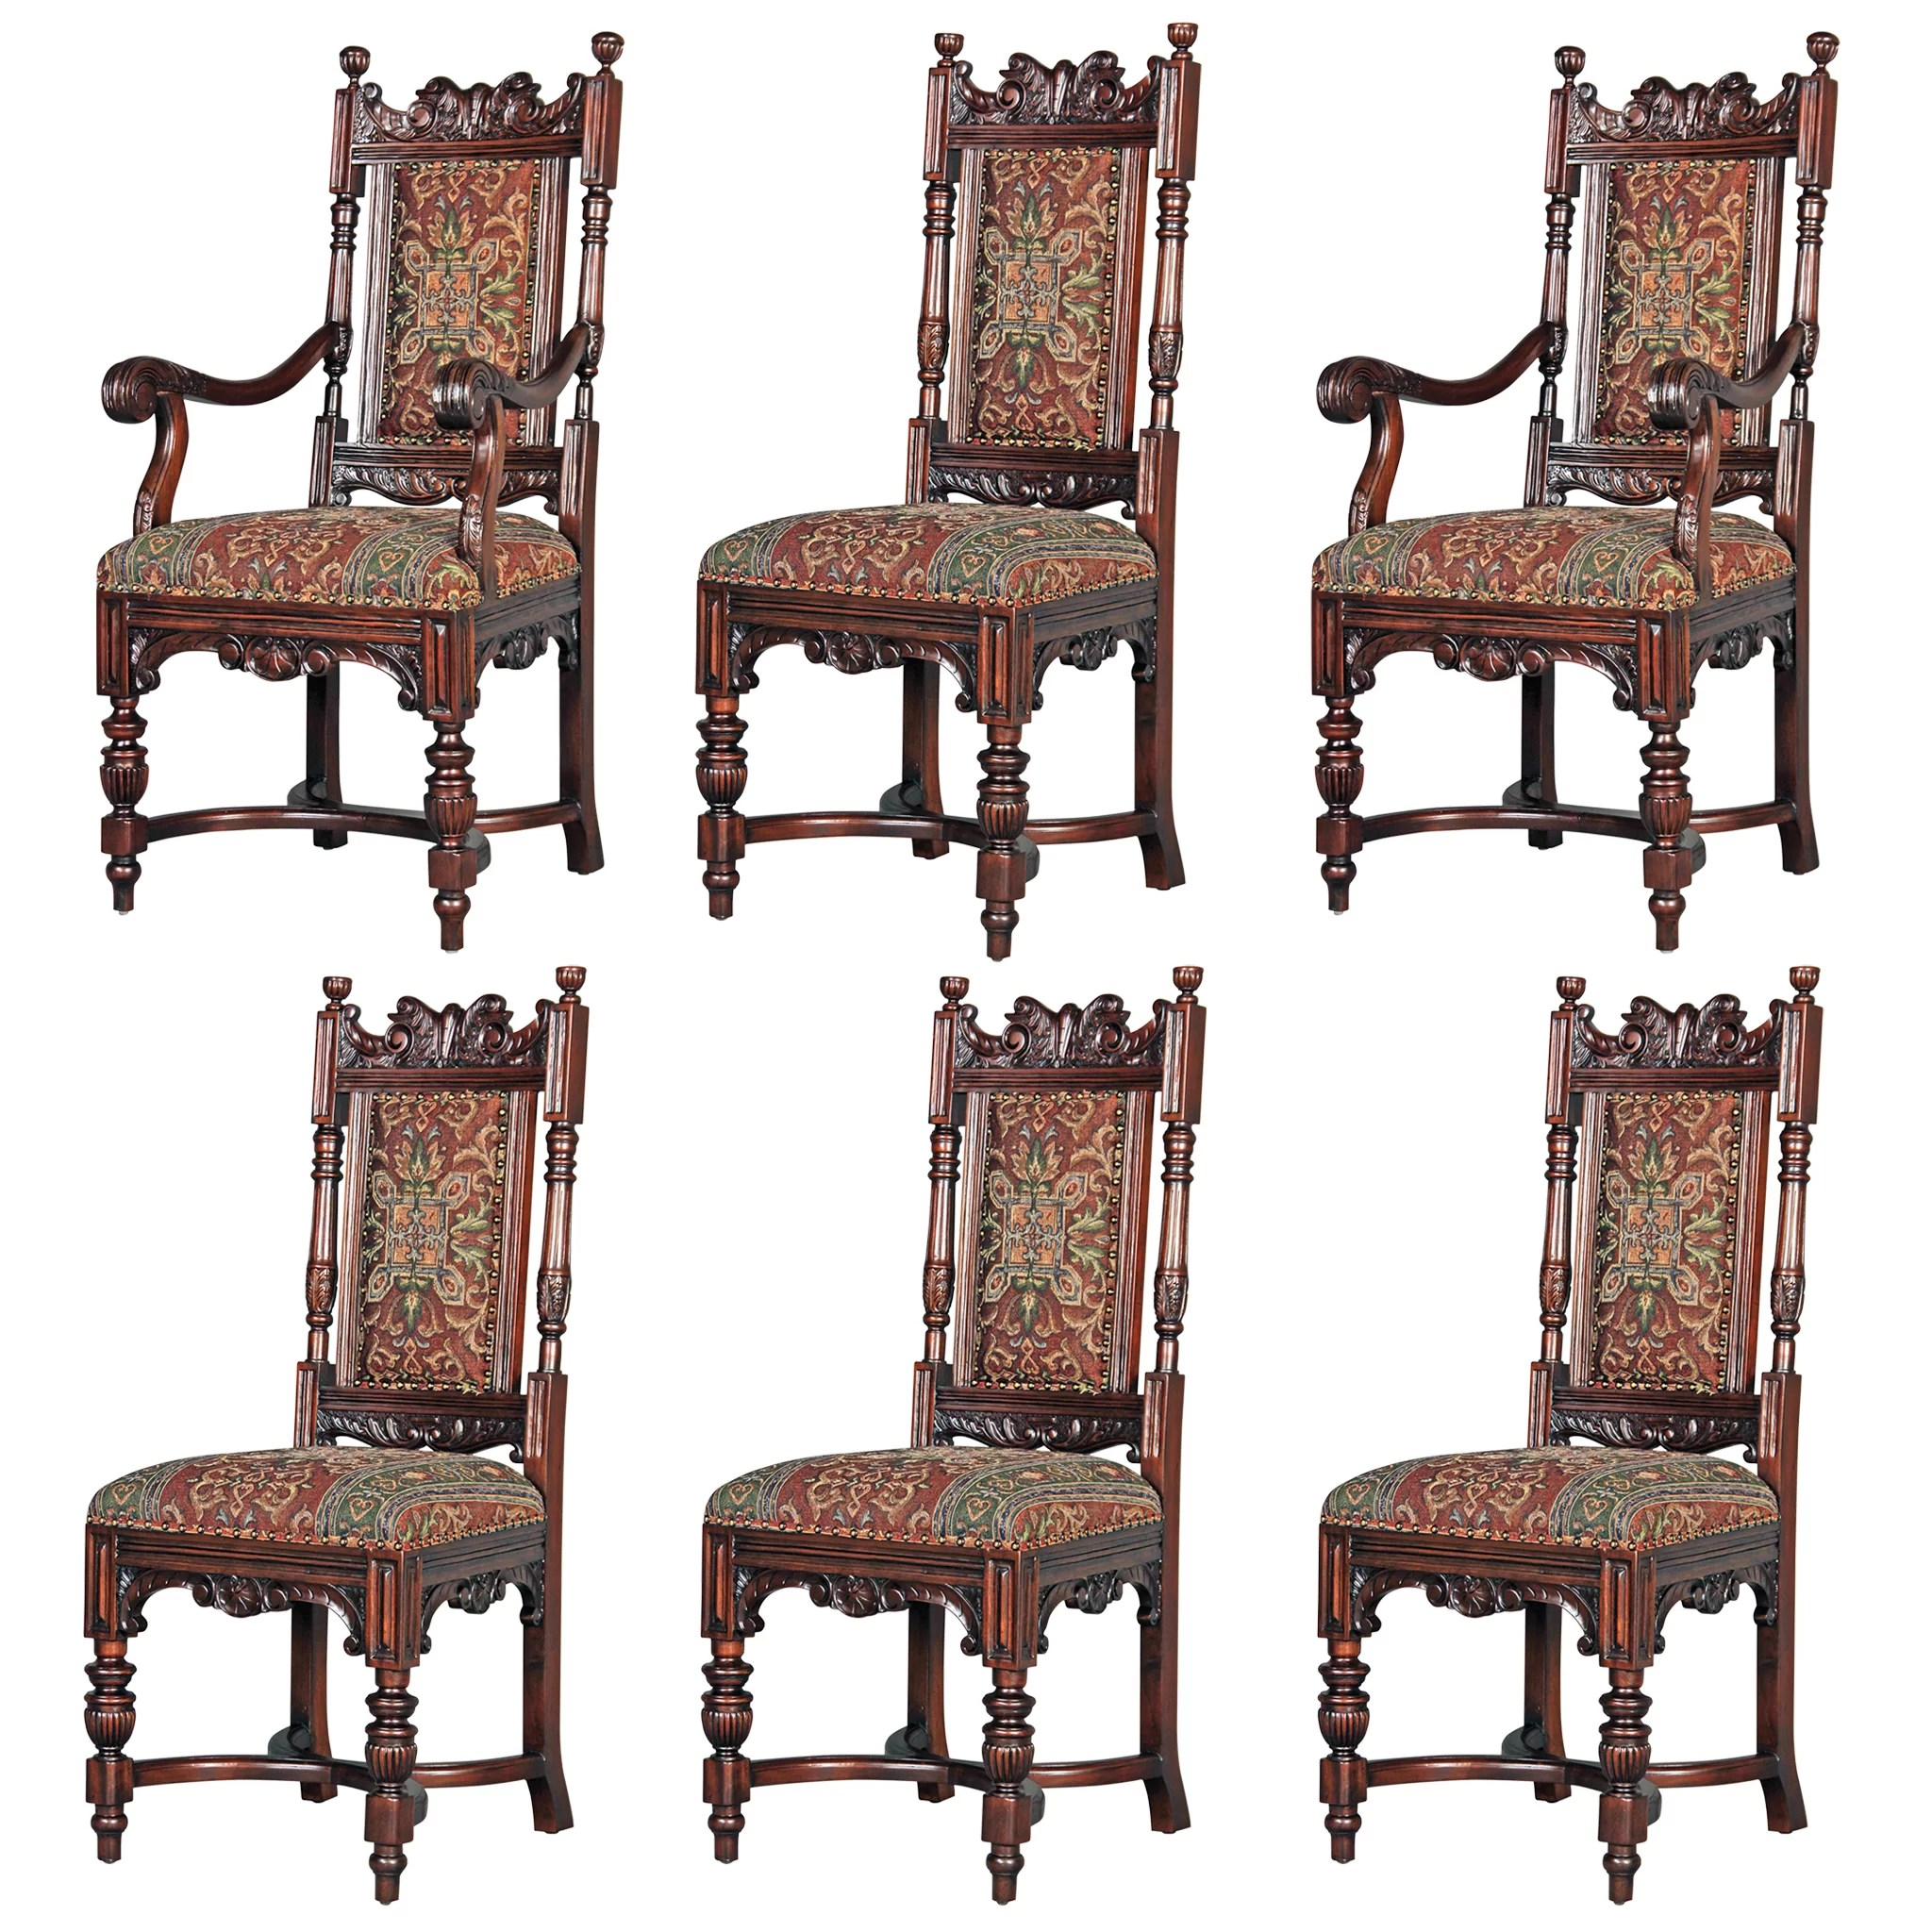 Dining Chair Set Of 6 Grand Classic Edwardian Upholstered 6 Piece Dining Chair Set